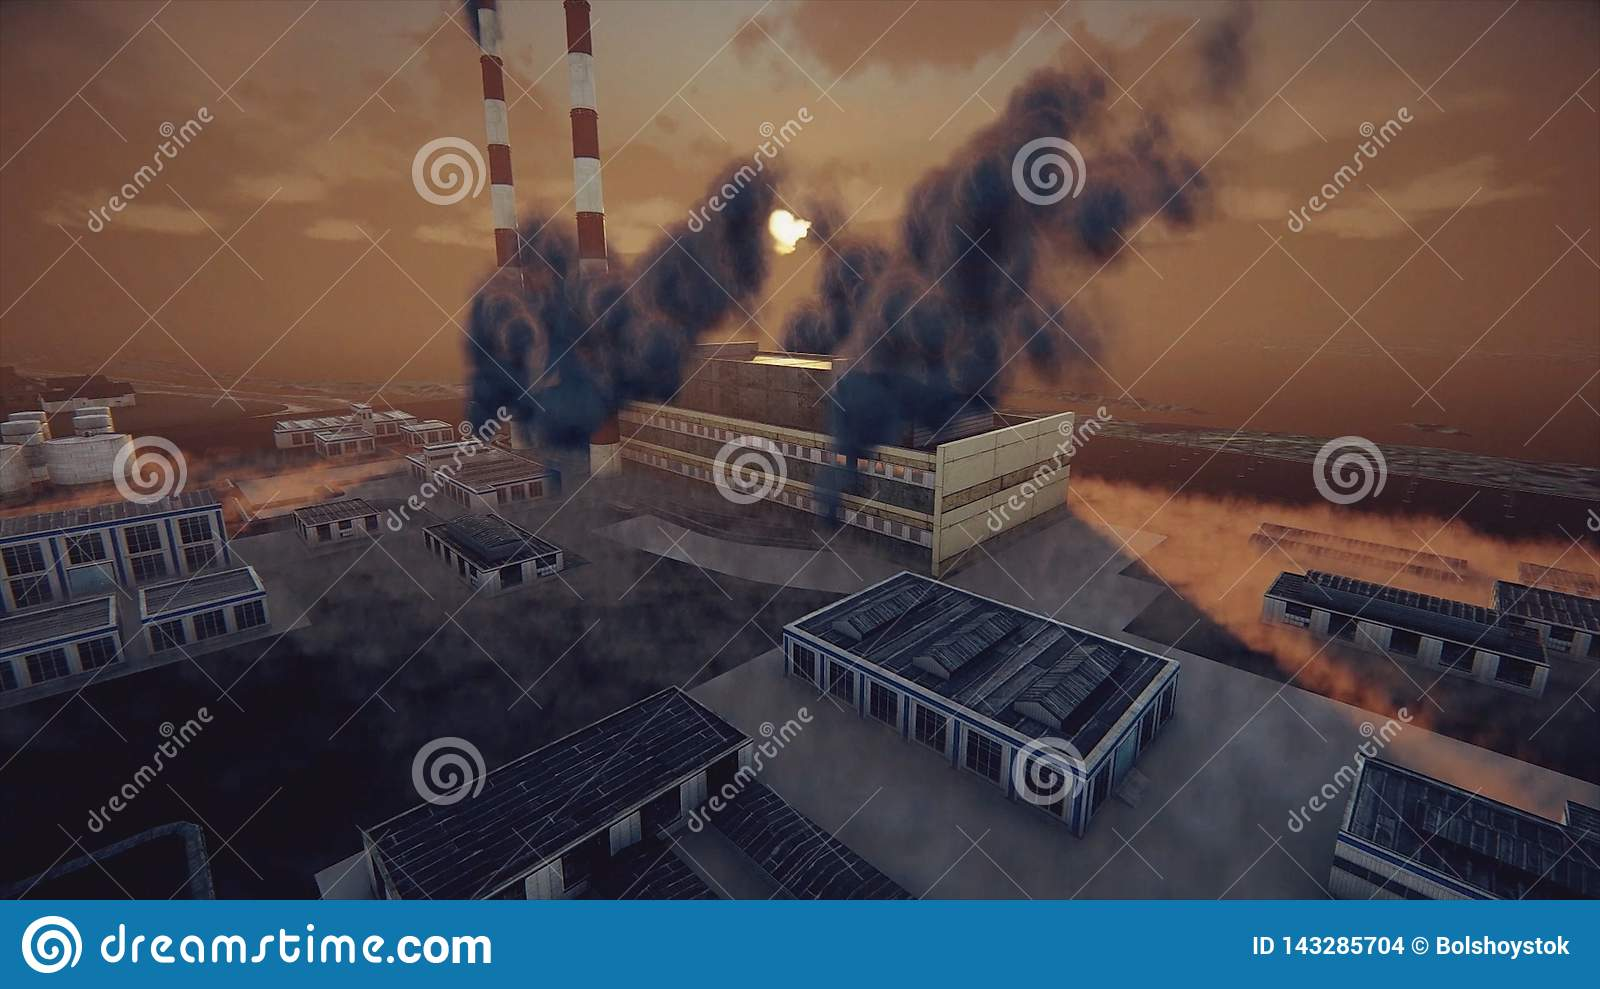 The smoking chimneys of the plant and abstract factory in thick smog, ecological problems and air pollution concept